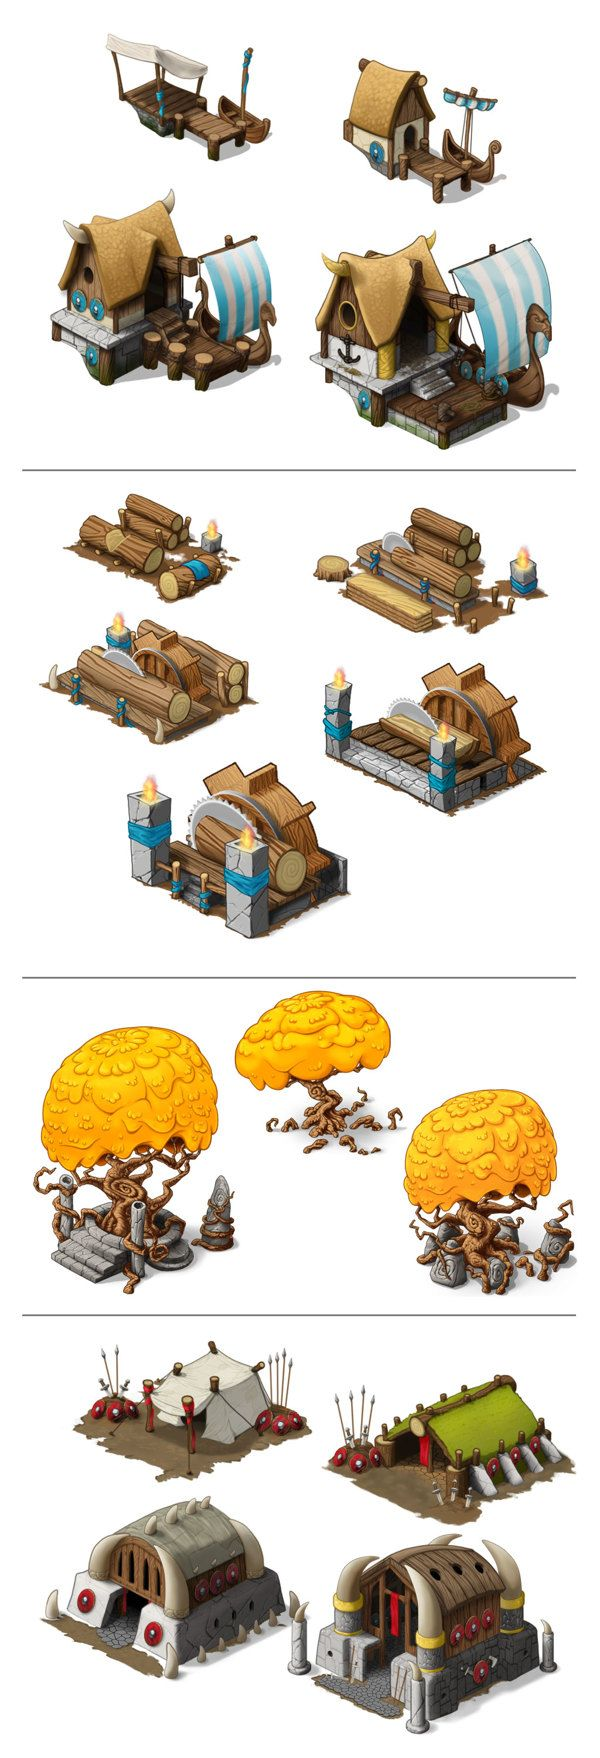 Godsrule - Building Levels by Thorir Celin, via Behance ★ Find more at http://www.pinterest.com/competing/